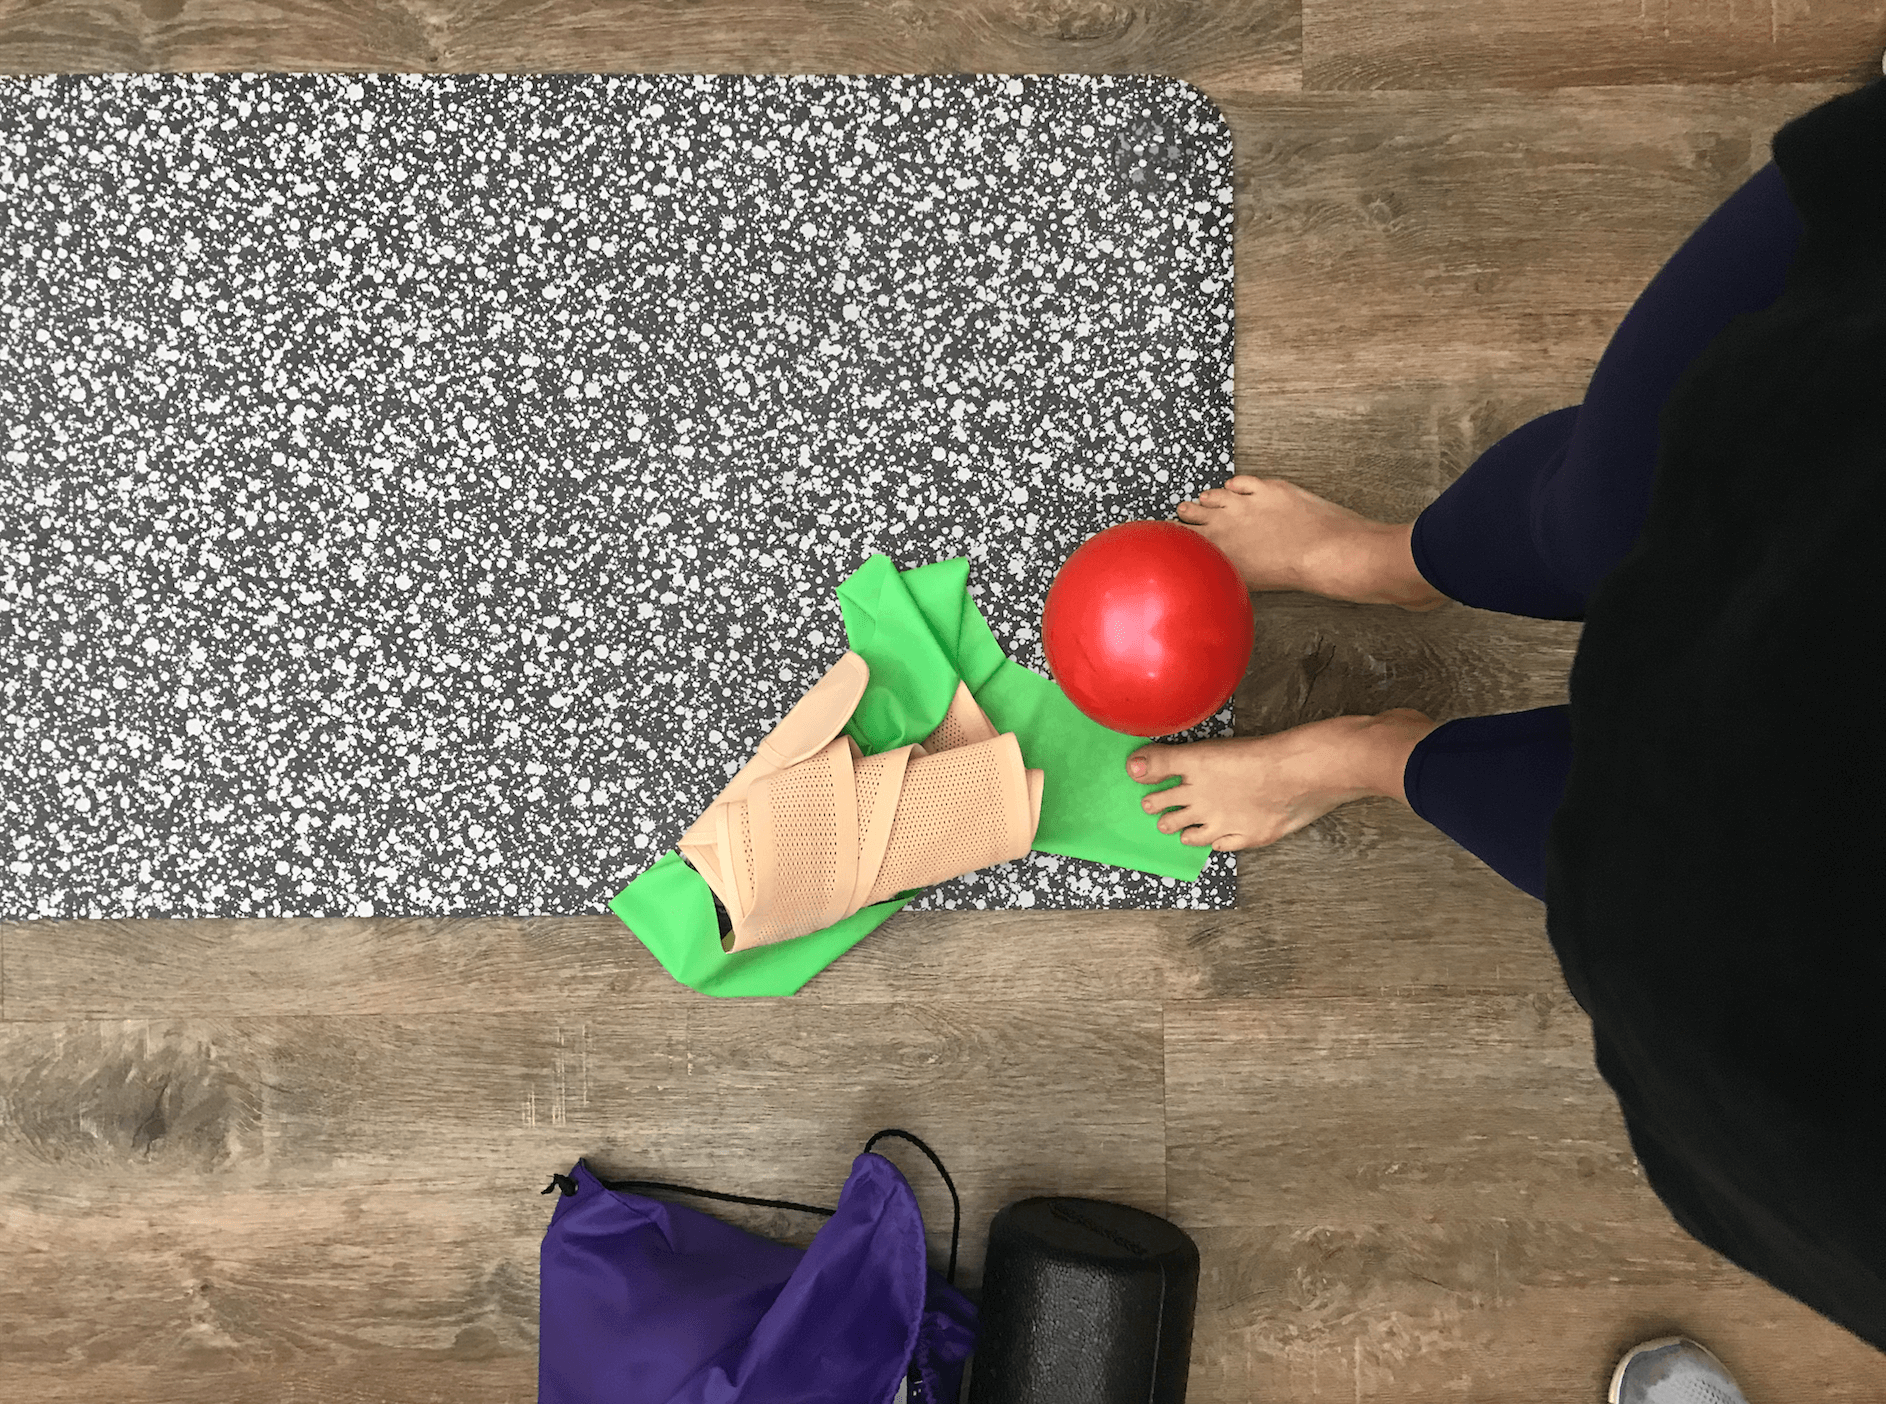 postpartum girdle and exercise ball on yoga mat